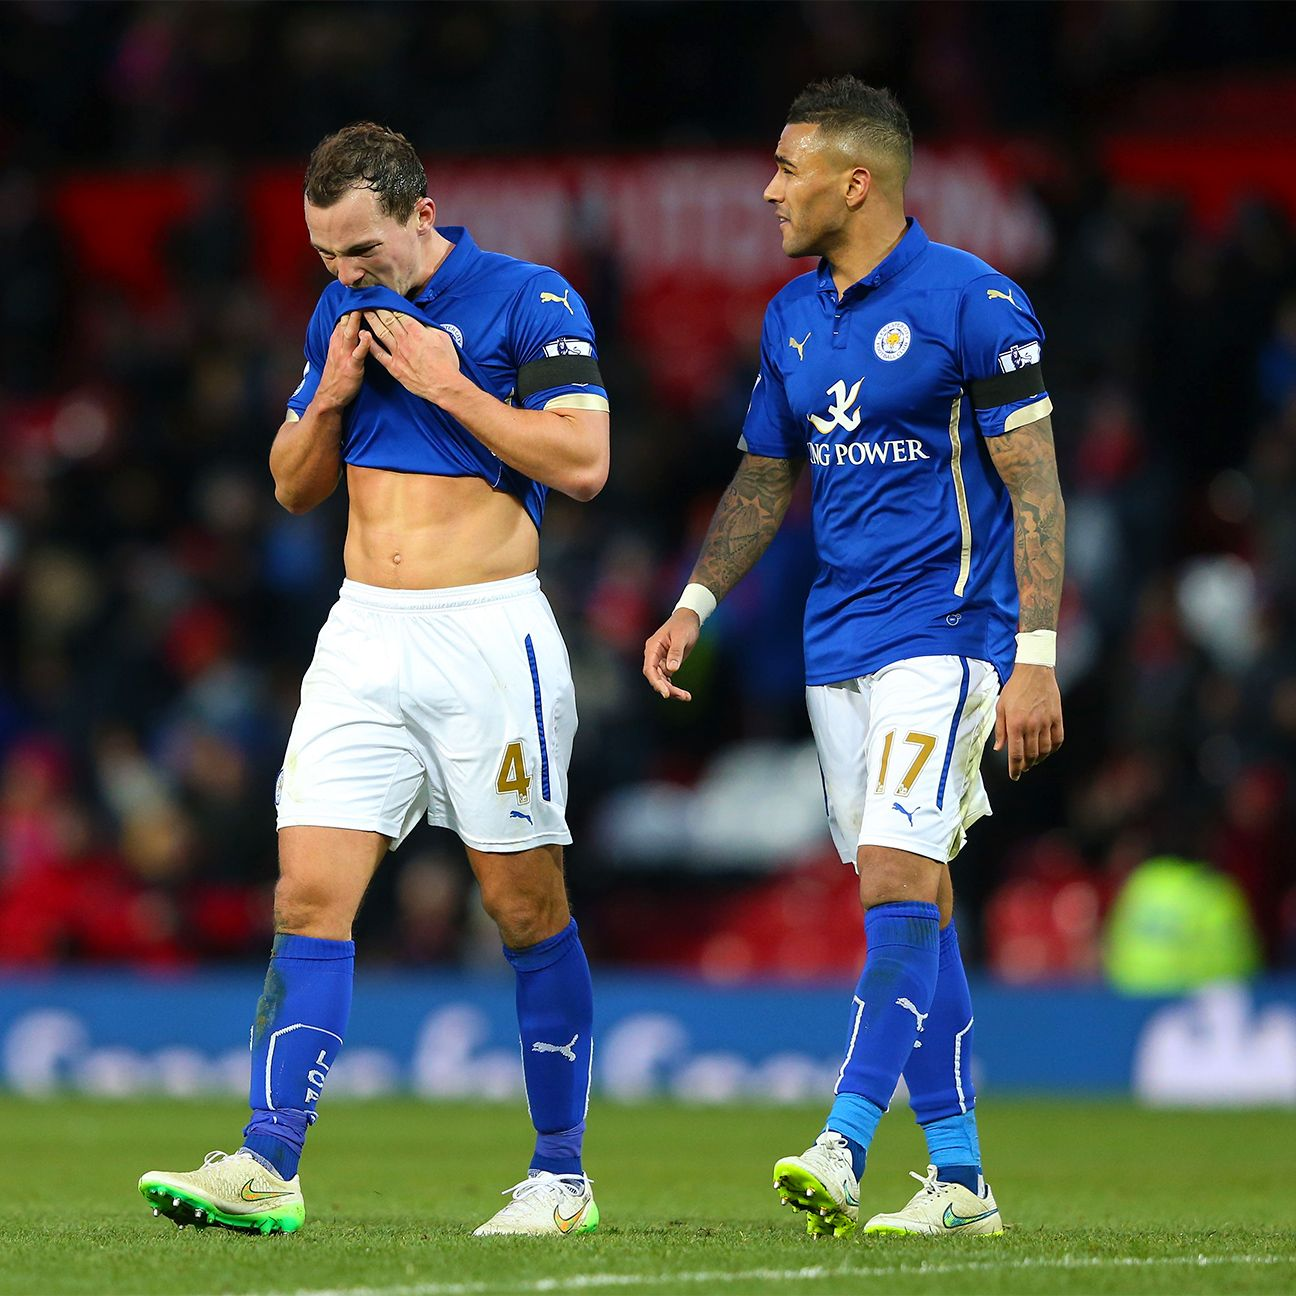 Despite defeat at Old Trafford, Leicester City did not lose ground to their relegation rivals over the weekend.